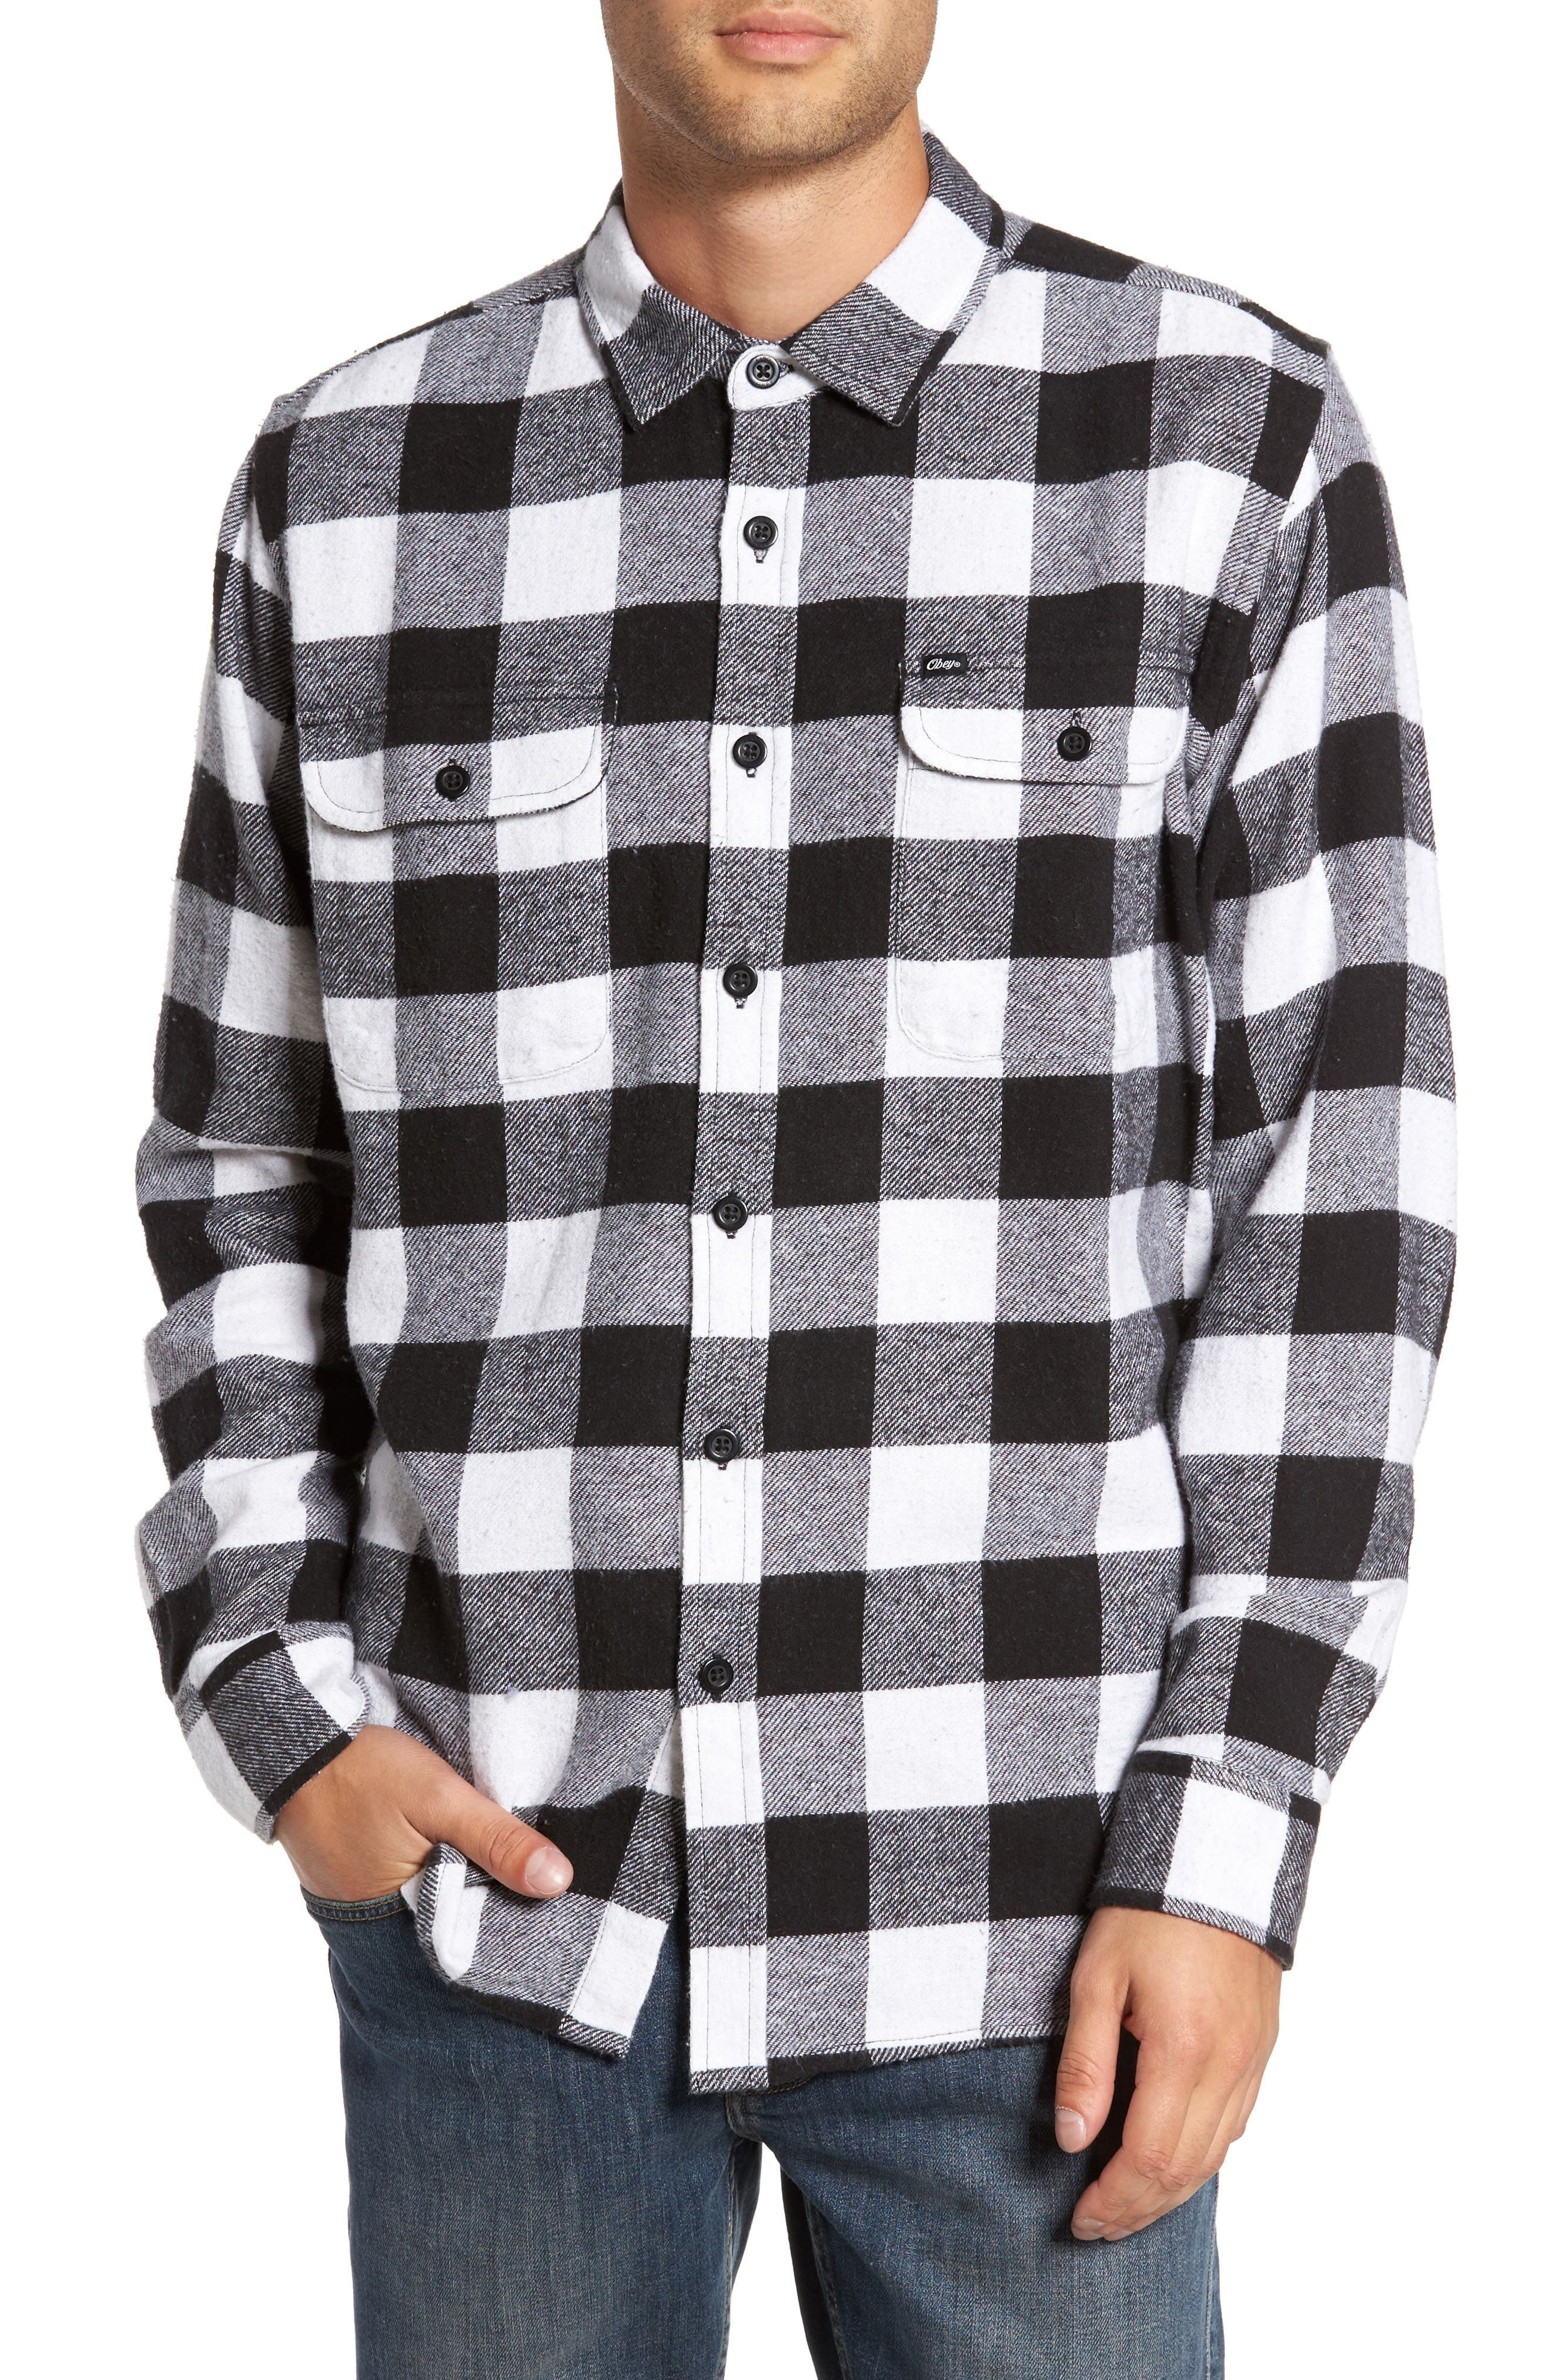 Alternate Image 1 Selected - Obey Trent Check Woven Shirt